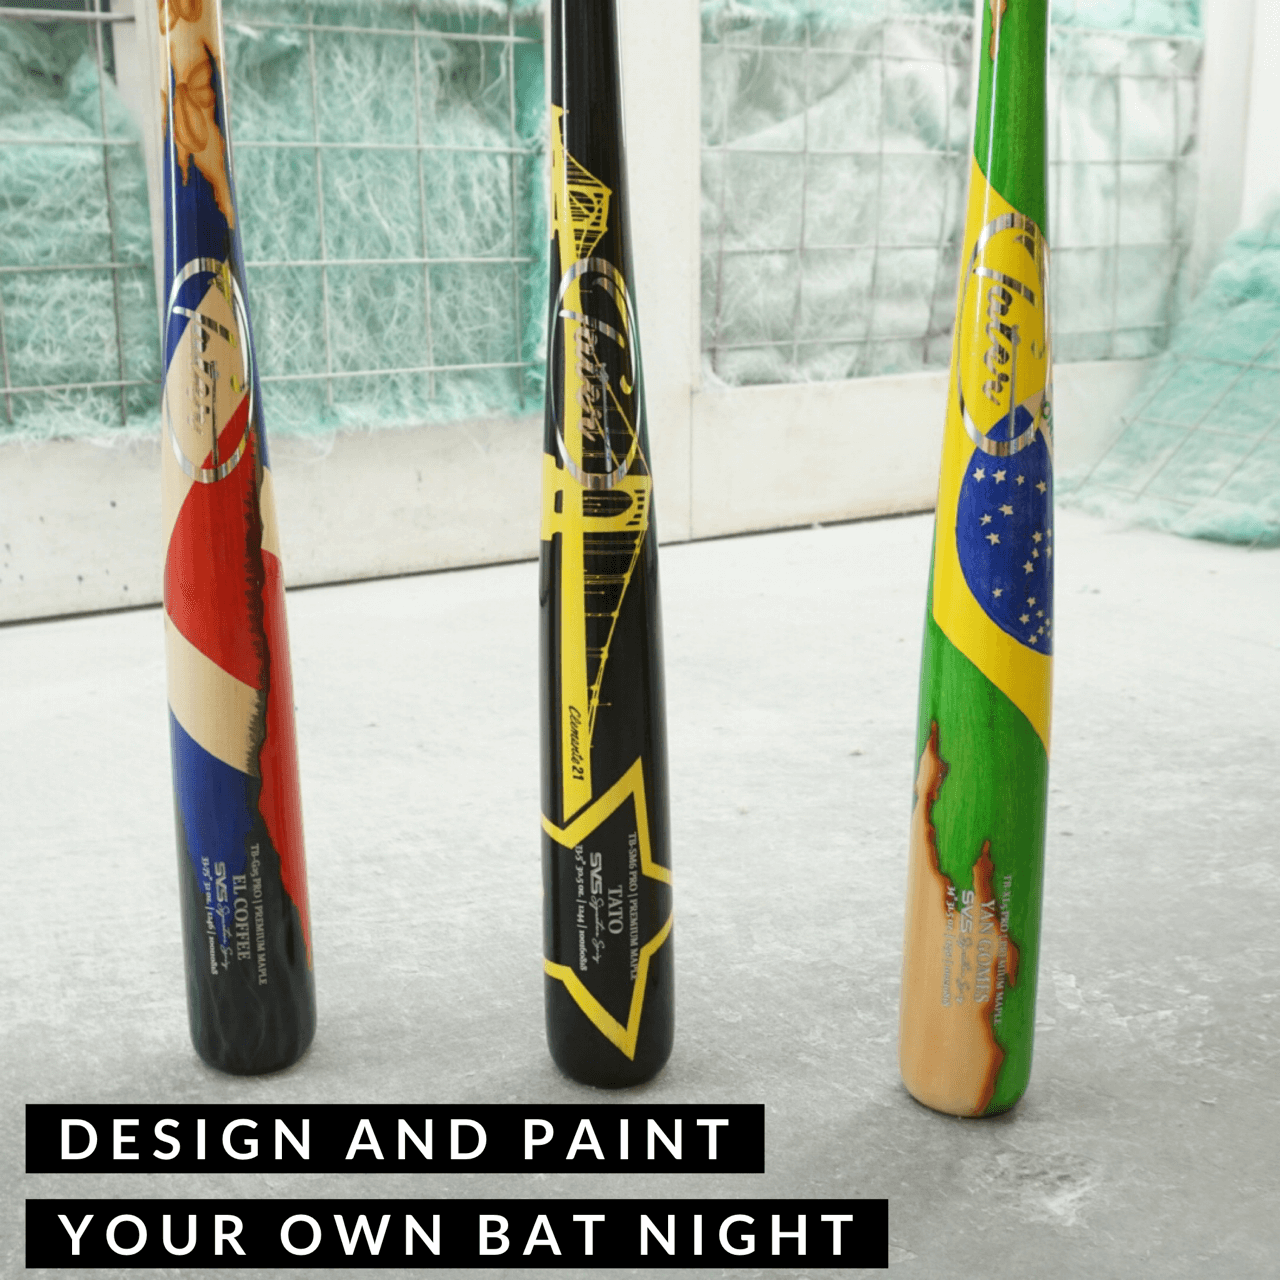 PAINT YOUR OWN BAT - Tater Bats - Professional Wood Baseball Bats